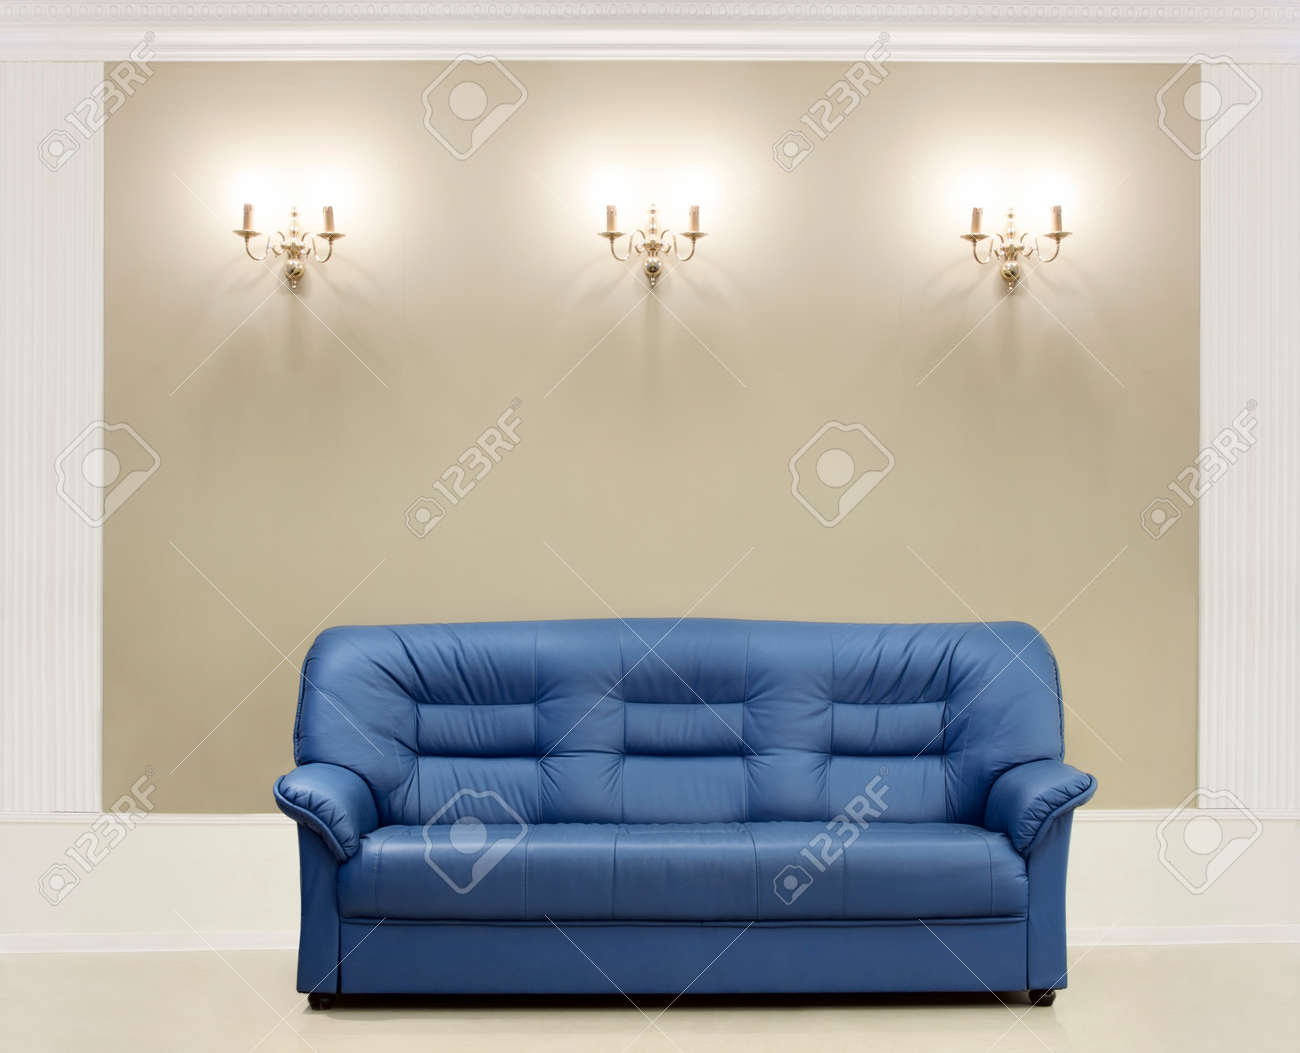 The Dark Blue Leather Sofa, Is Put About A Wall With Candelabrums ...